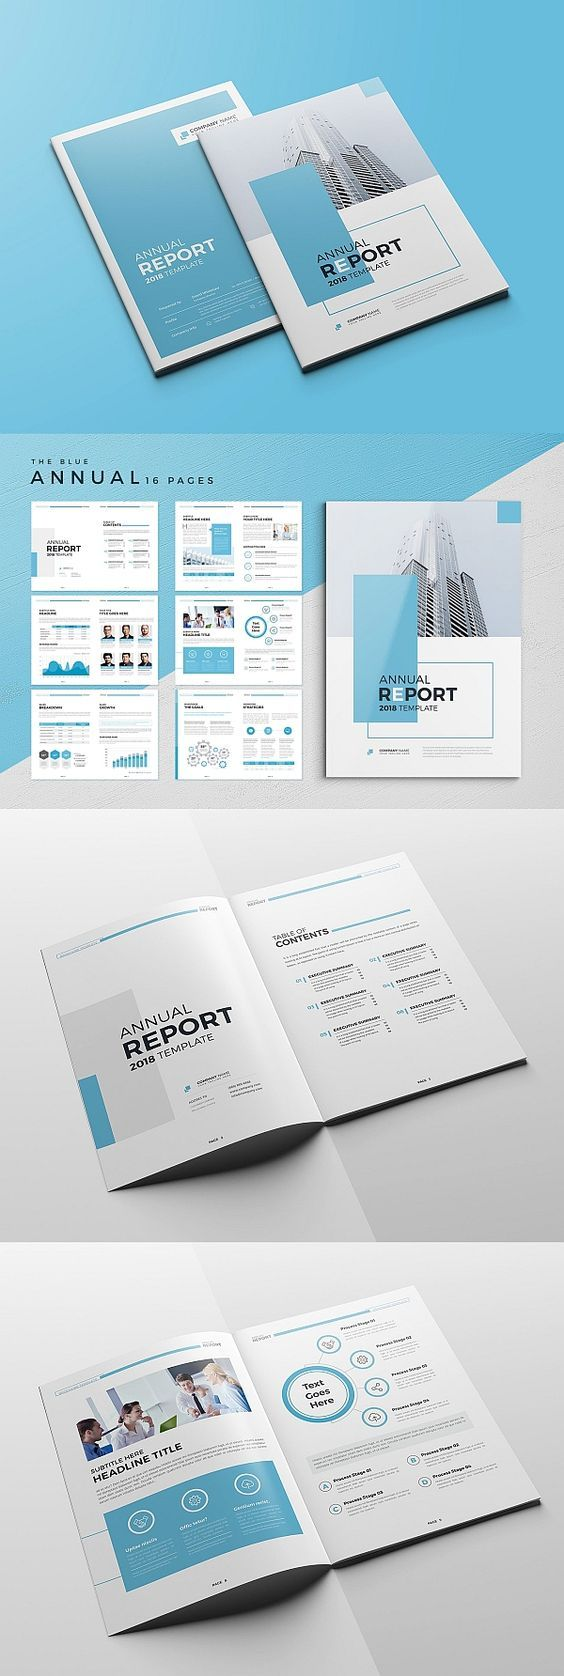 Annual Report Brochure Design Professional Report Creative